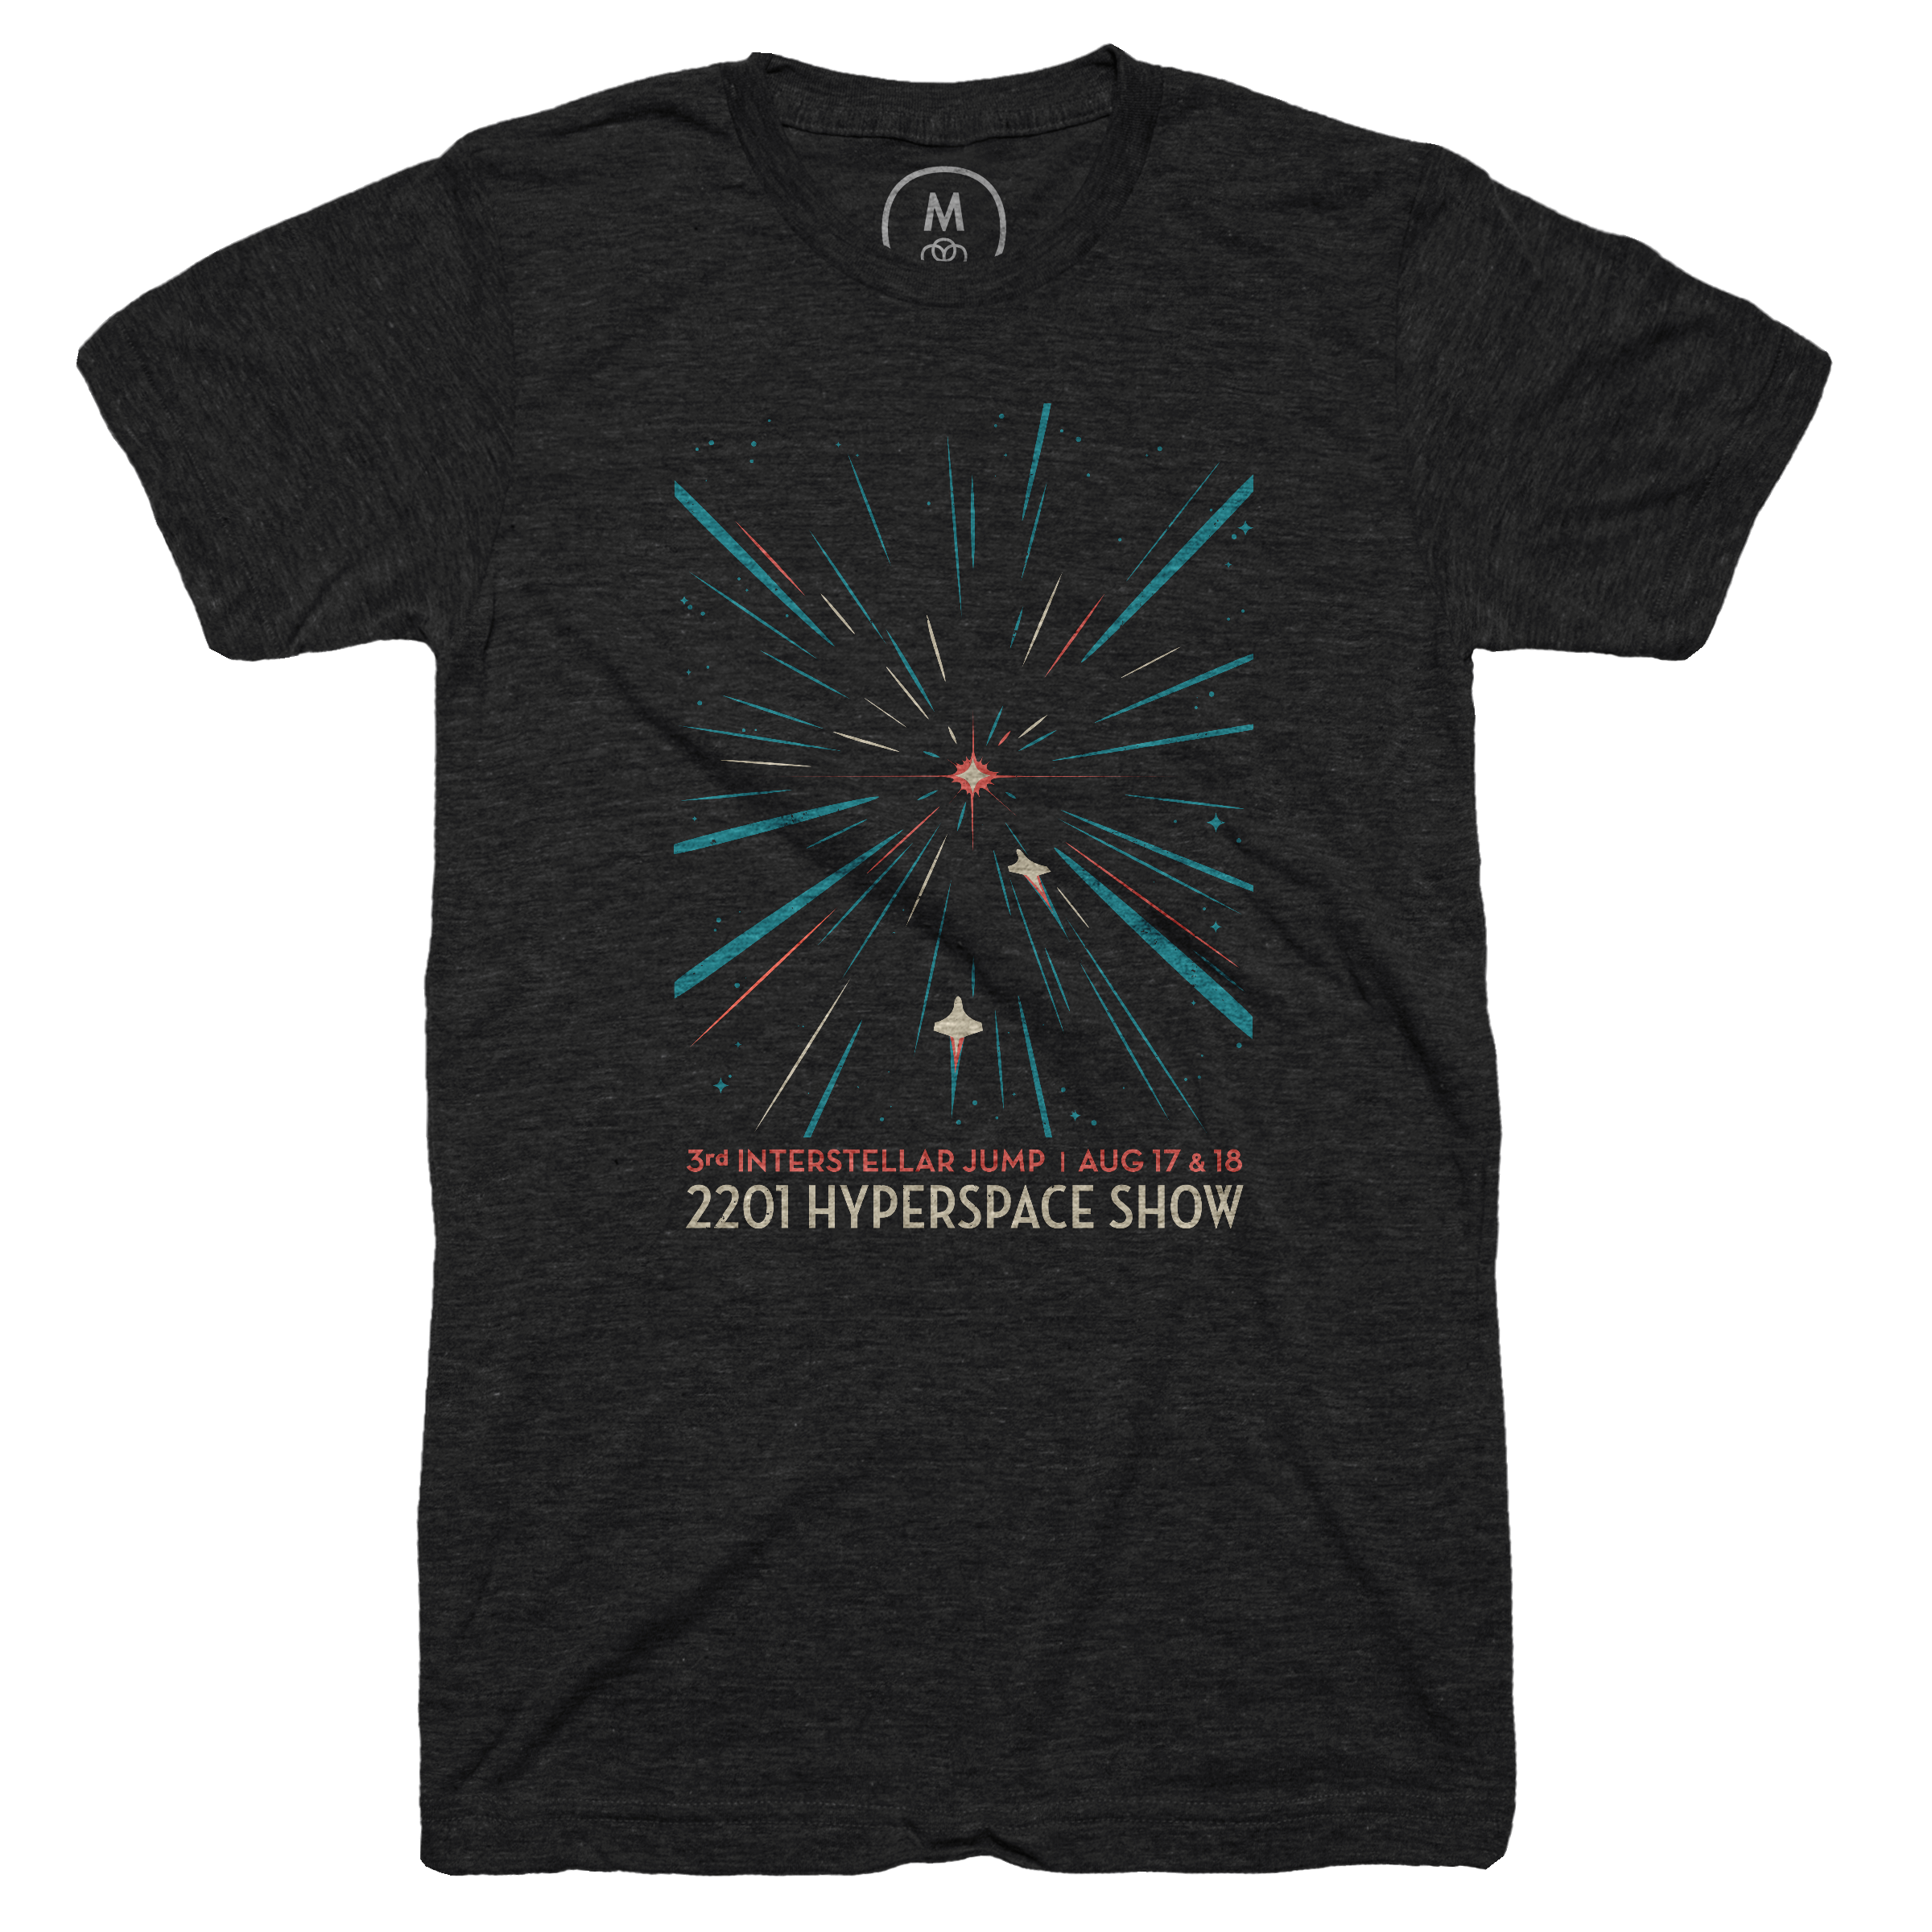 2201 HYPERSPACE SHOW